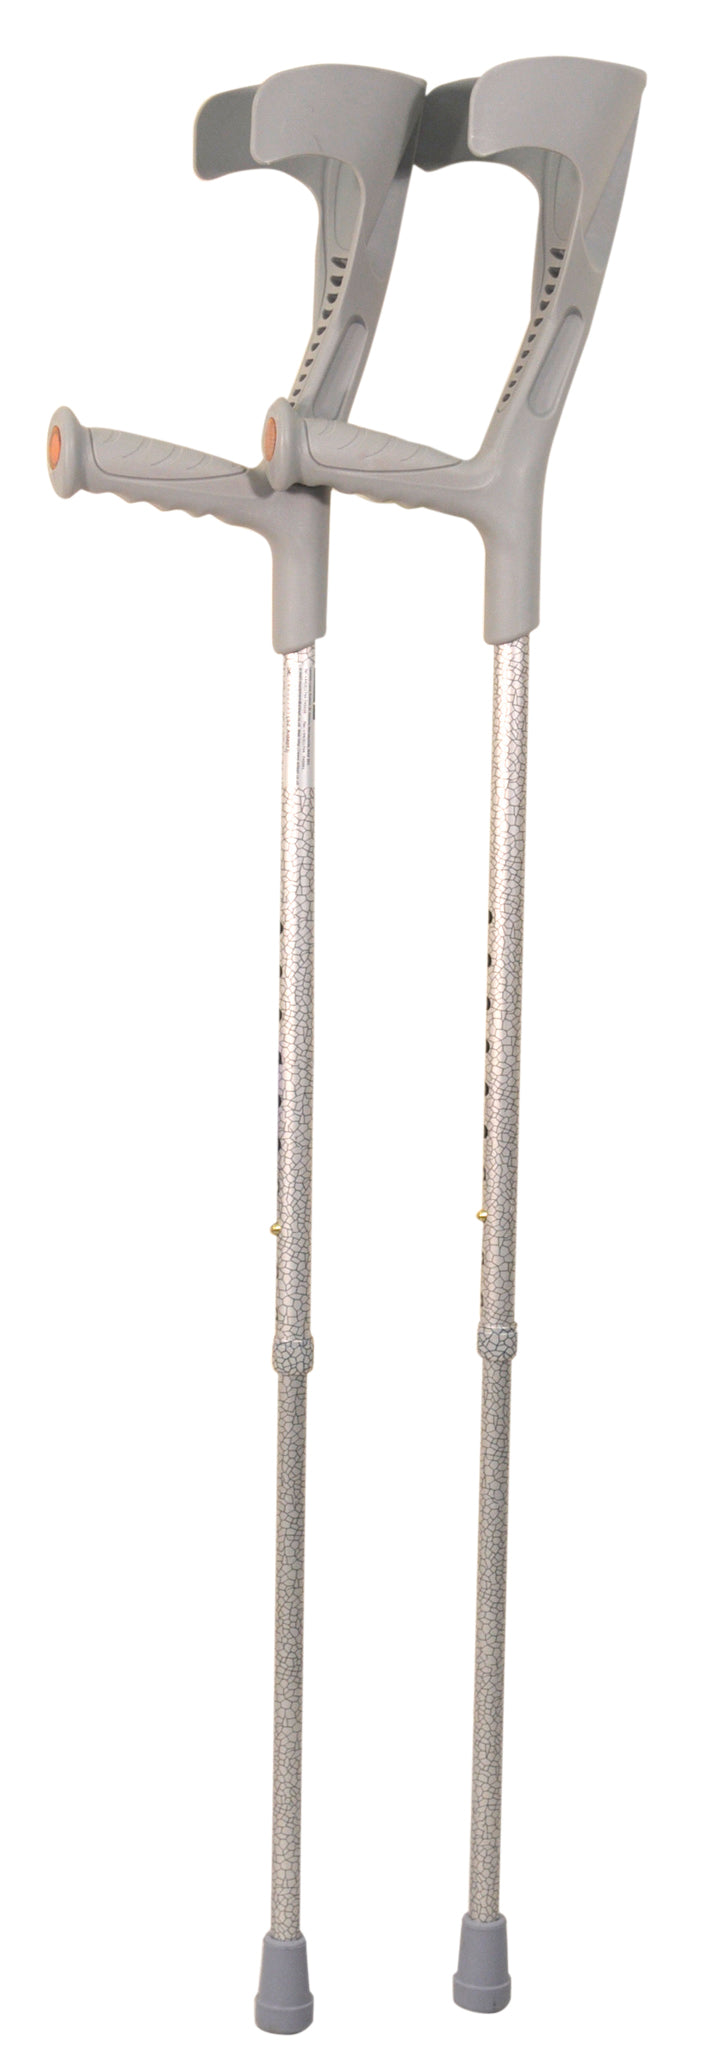 Deluxe Patterned Forearm Crutches (Pair) Grey Multi-Pattern